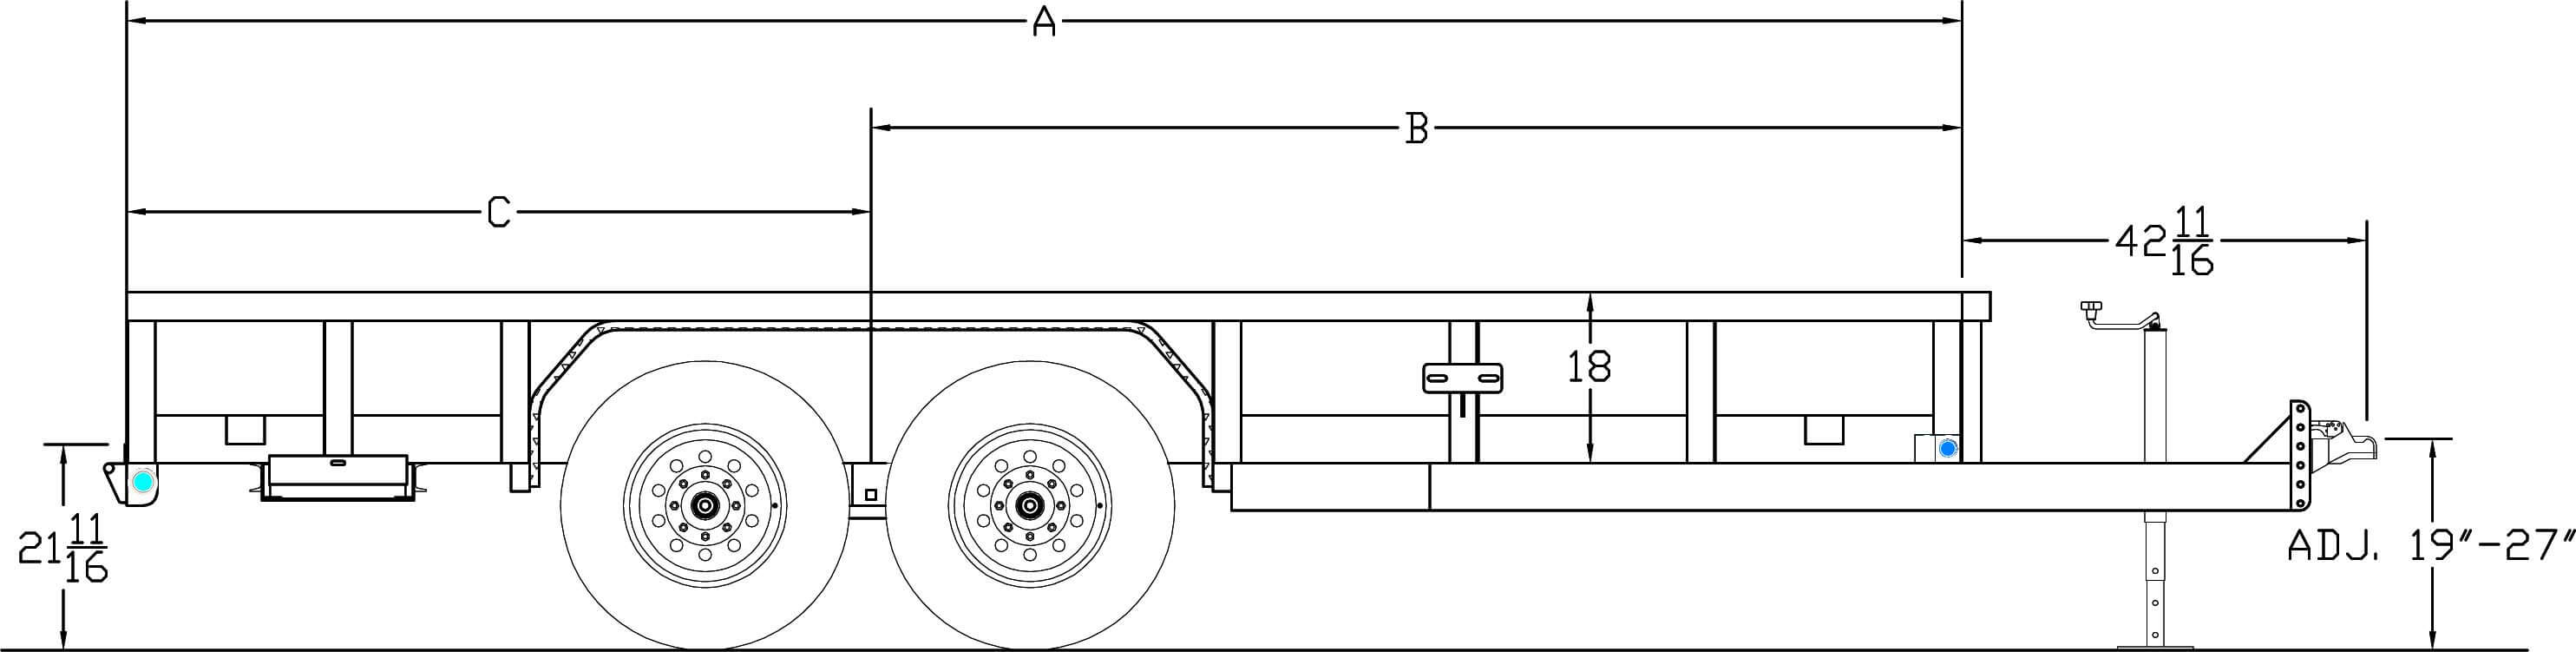 Line Drawing for 18' HD PIPE TOP UTILITY - 7K TANDEM AXLES - 4' SLIDE IN RAMPS